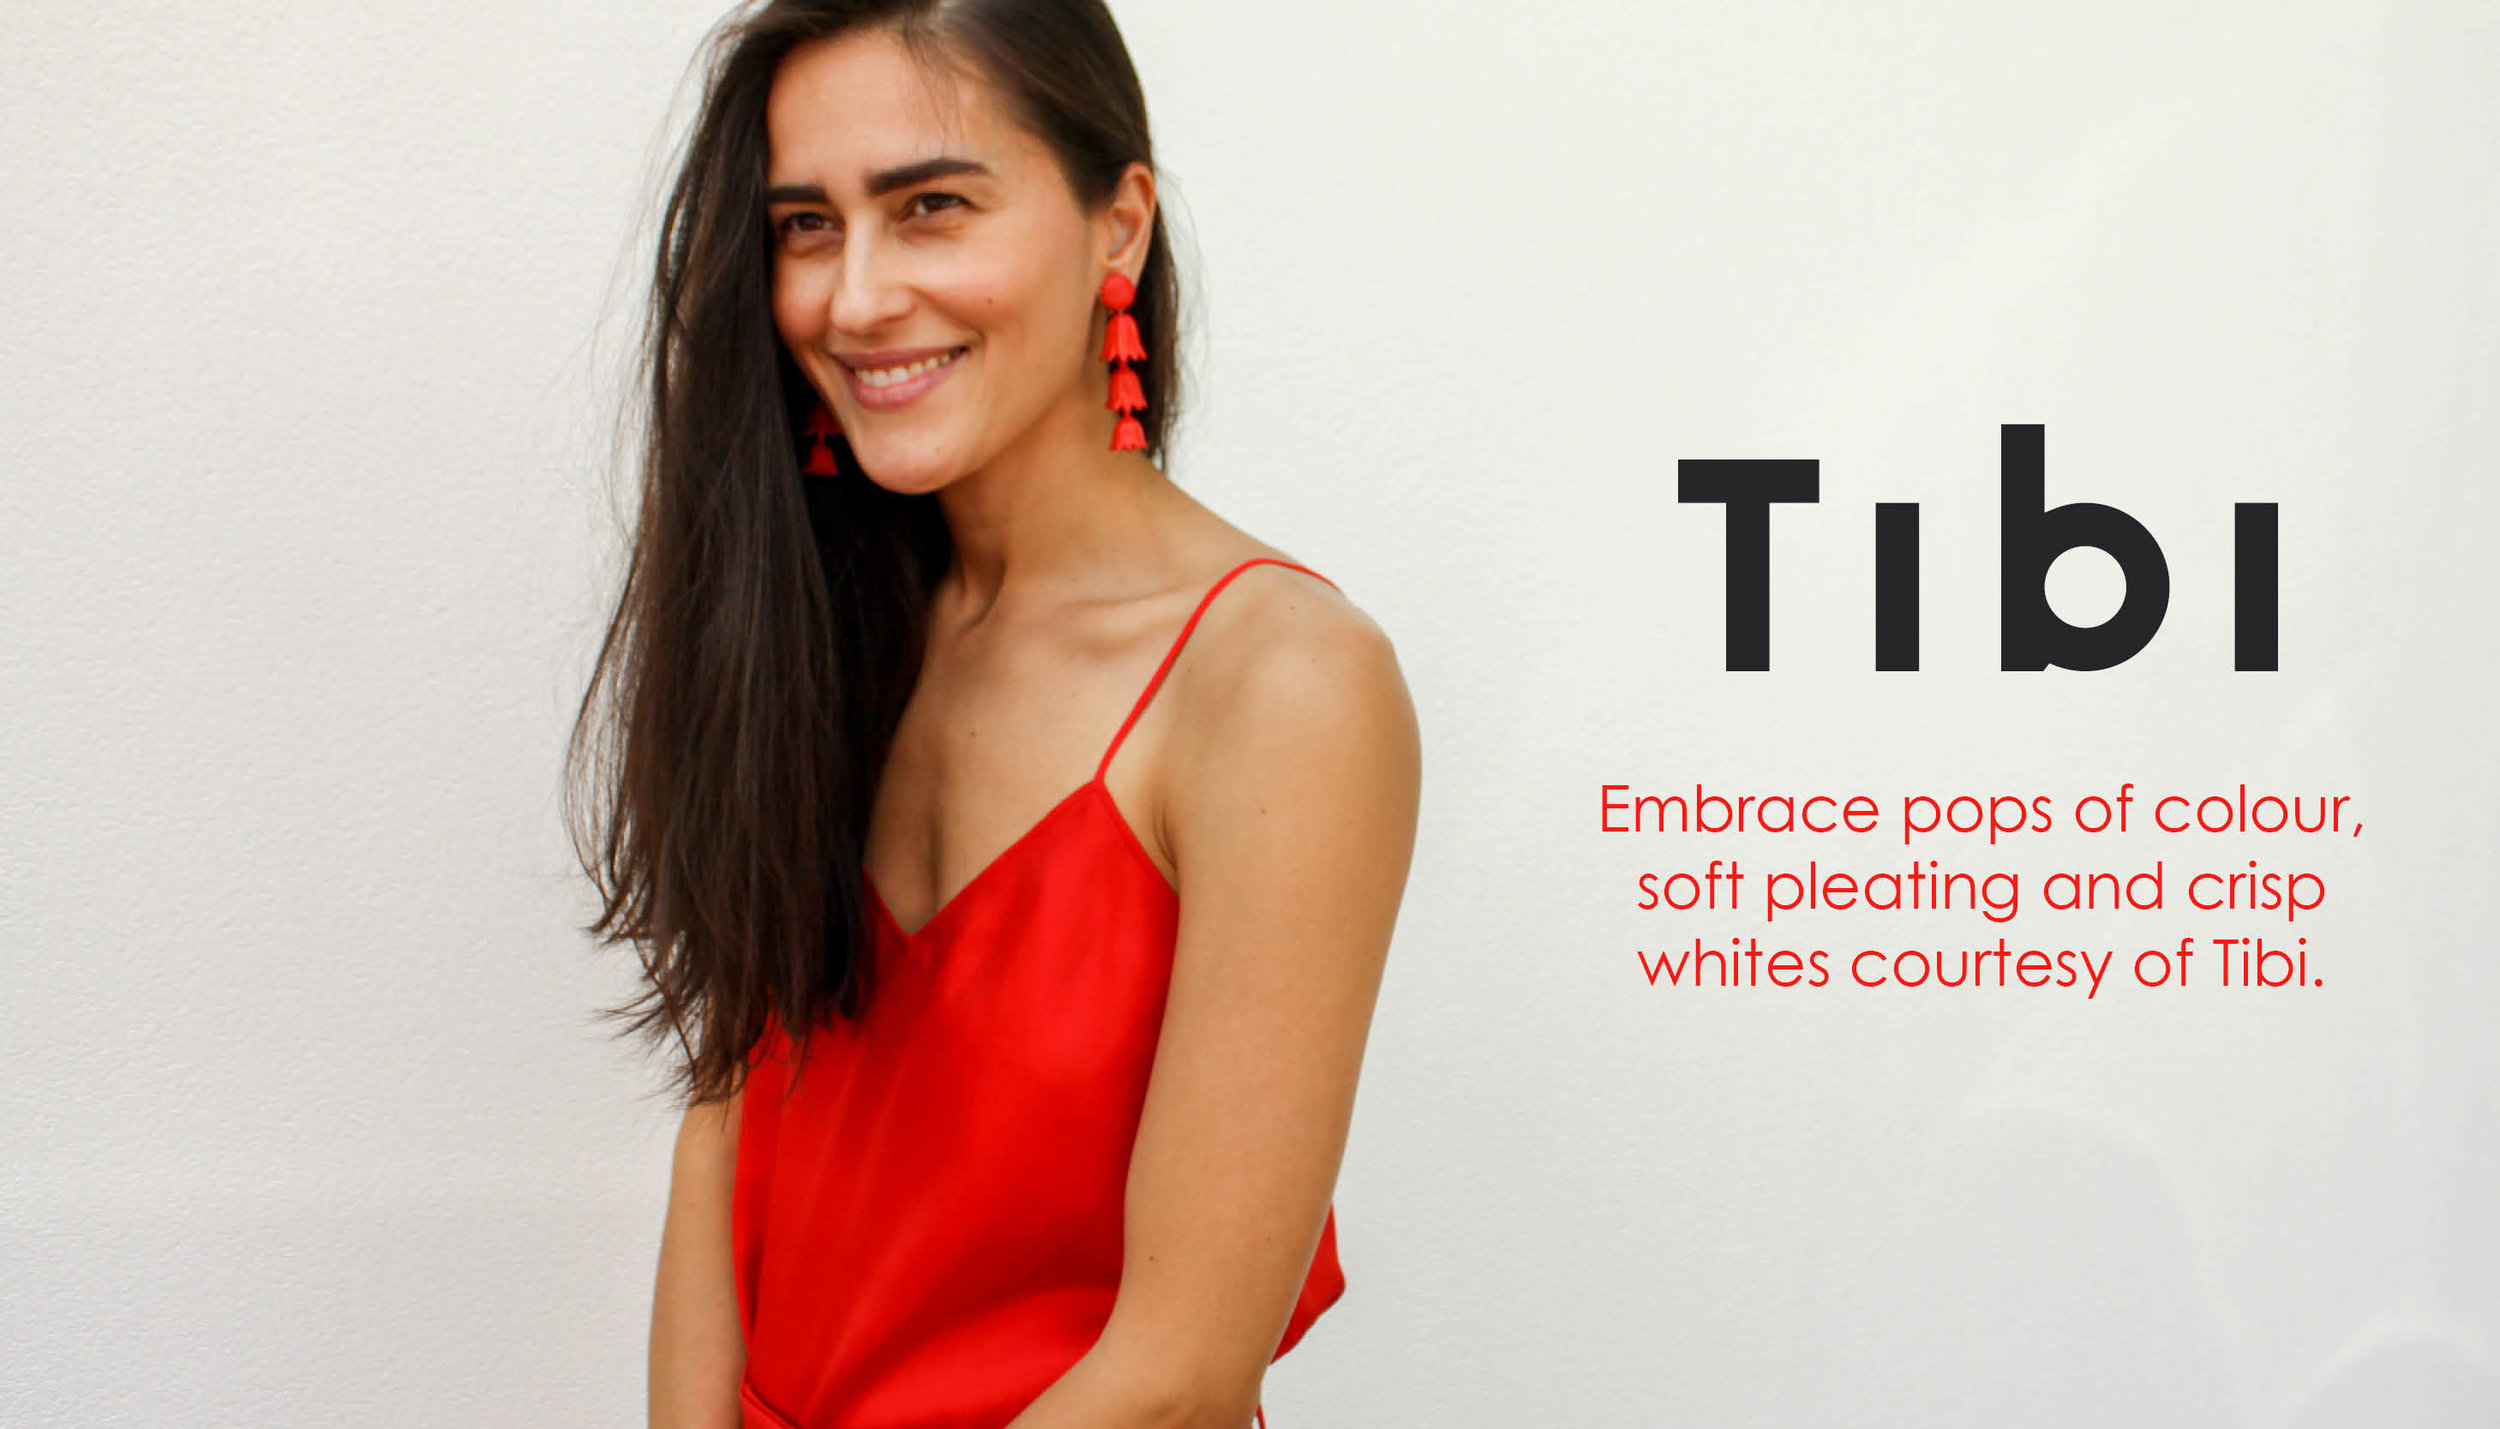 Tibi-Nov18-newsletter-header.jpg